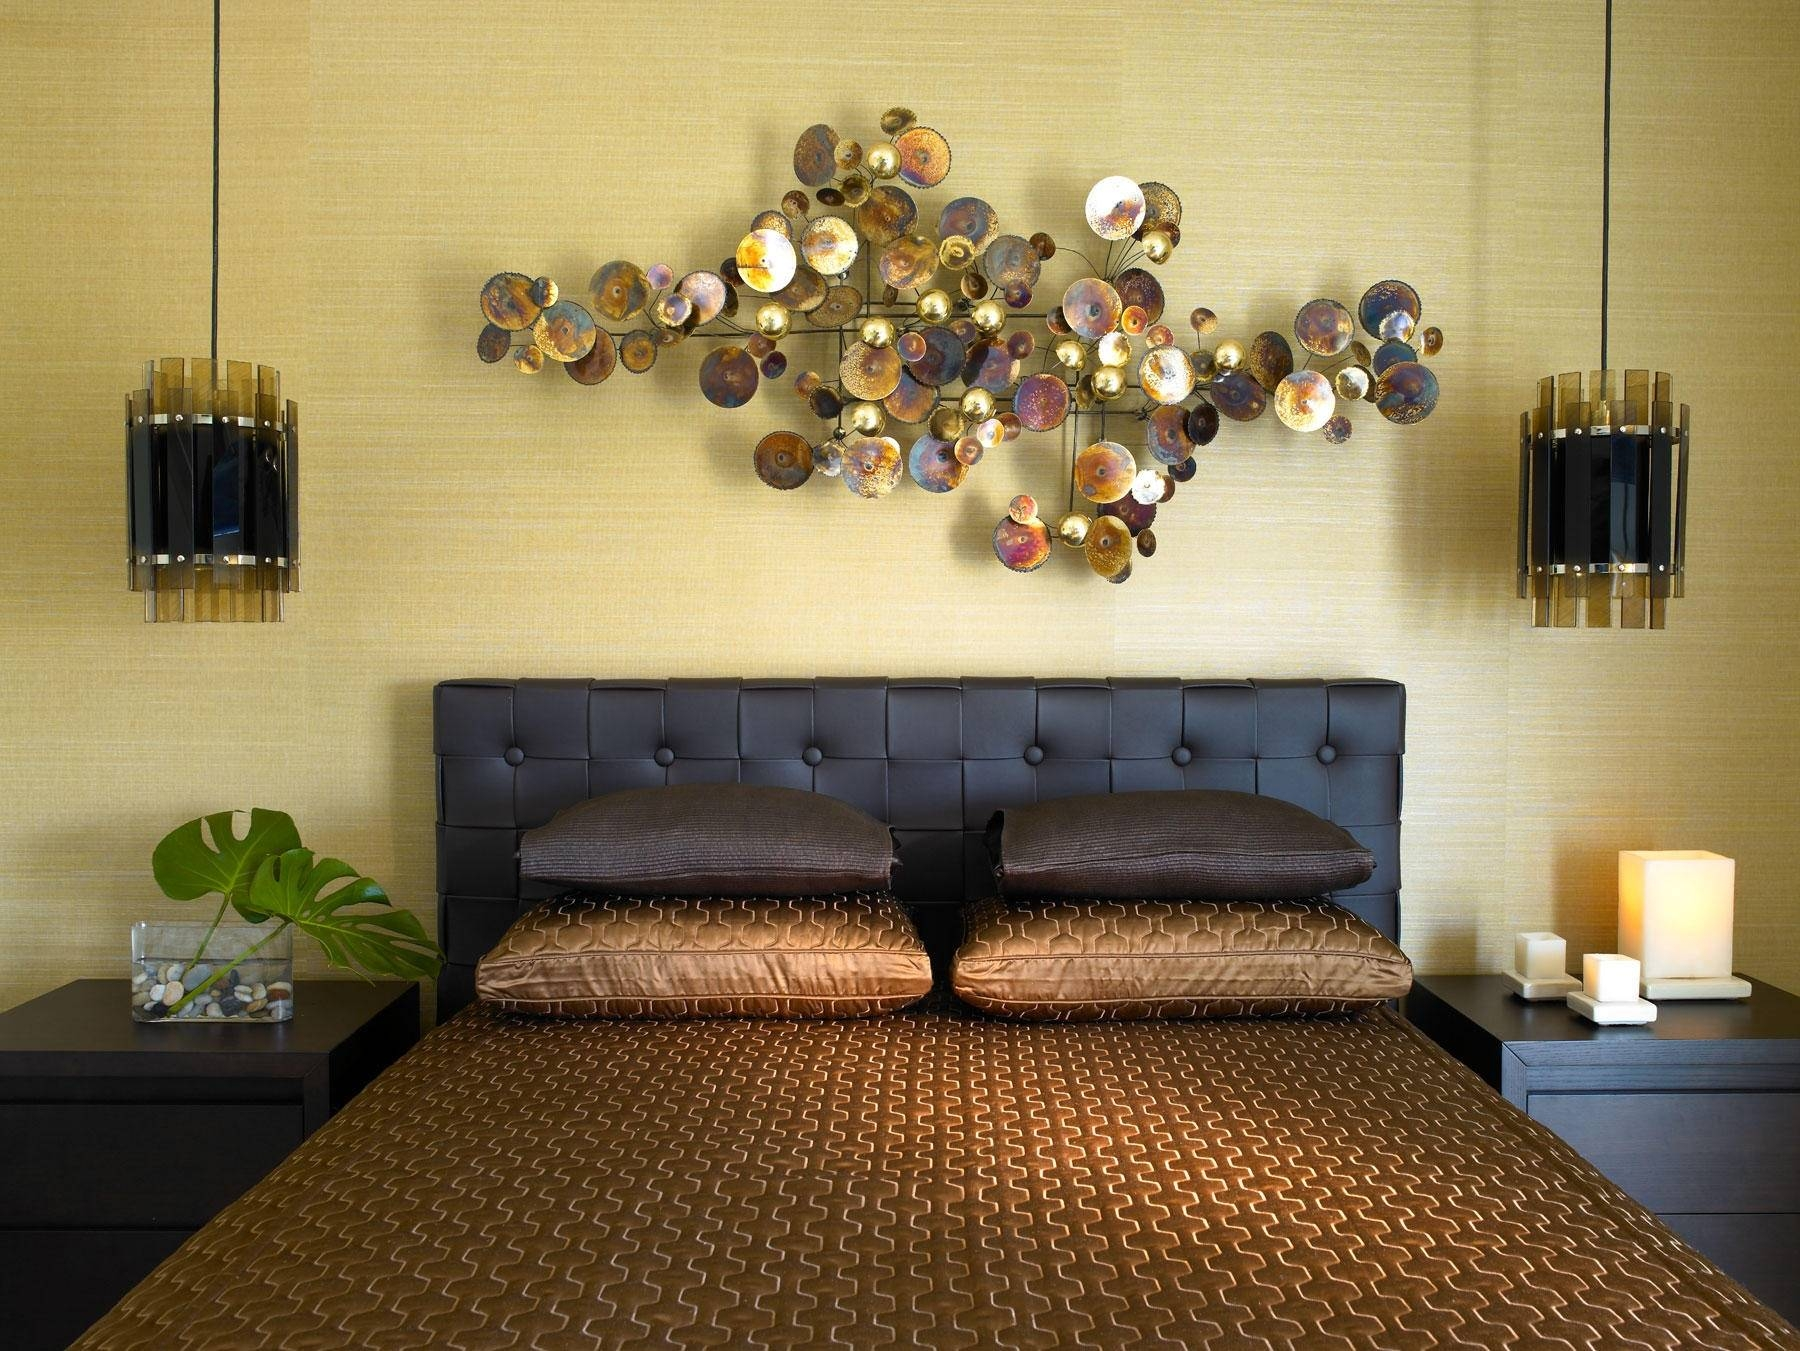 Wall Art Over Bed Home Design Styles Interior Ideas Superb For Newest Over The Bed Wall Art (View 15 of 20)